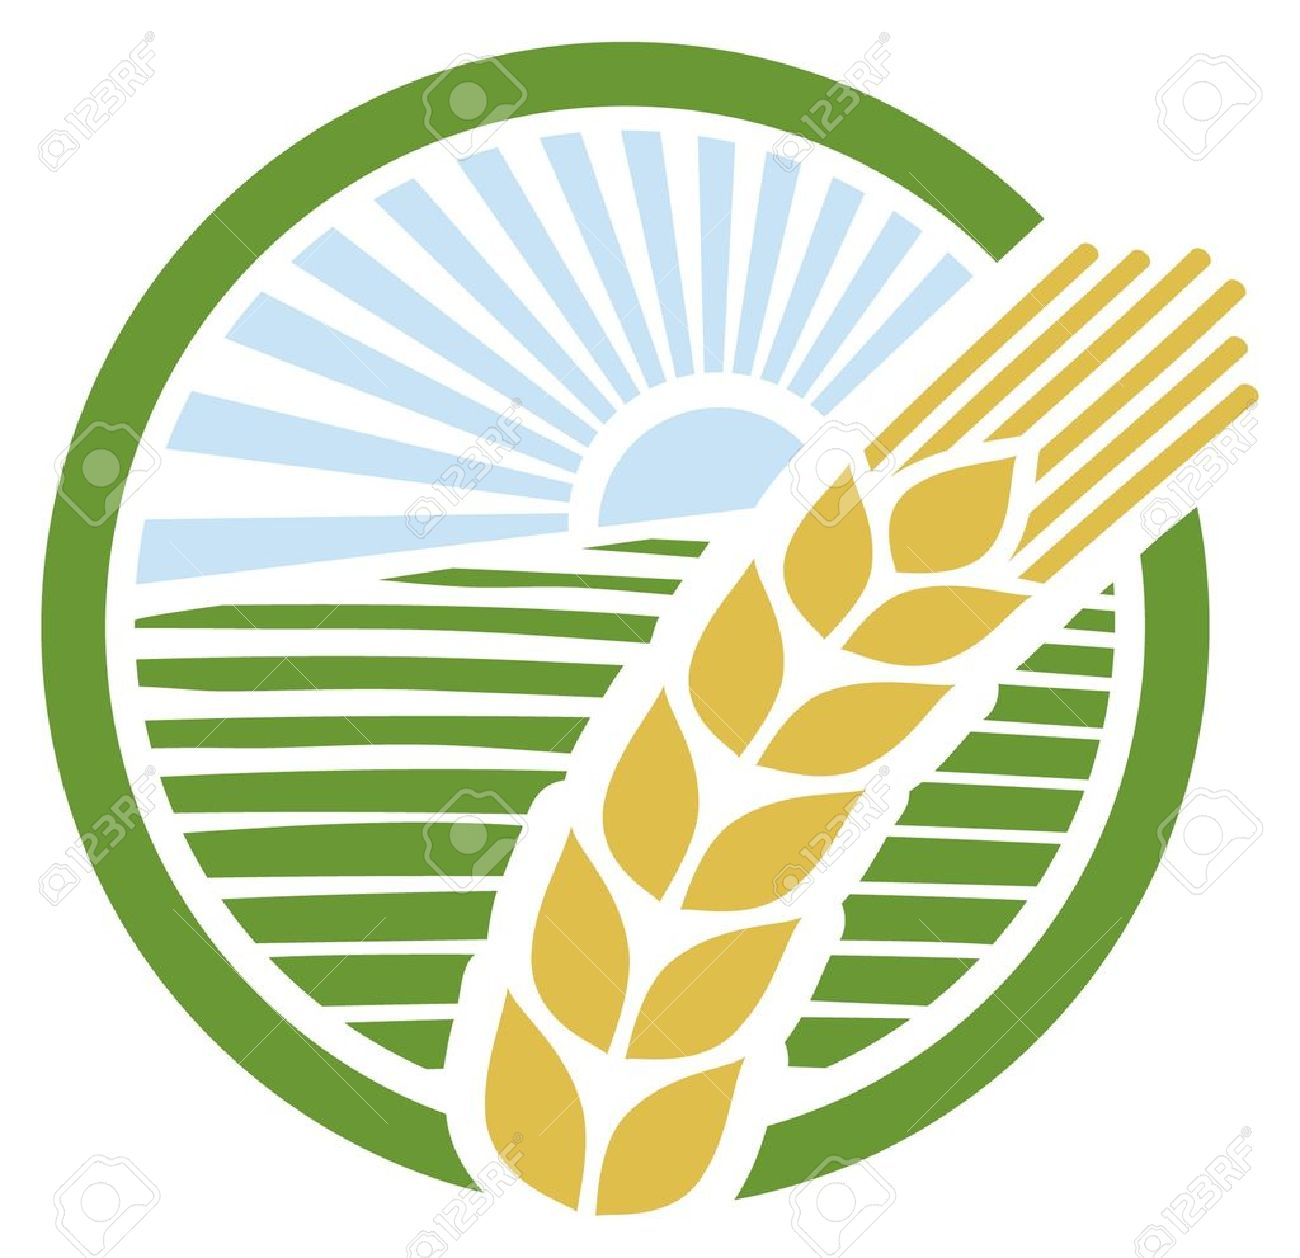 Wheat Sign, Wheat Badge, Wheat Design Royalty Free Cliparts.